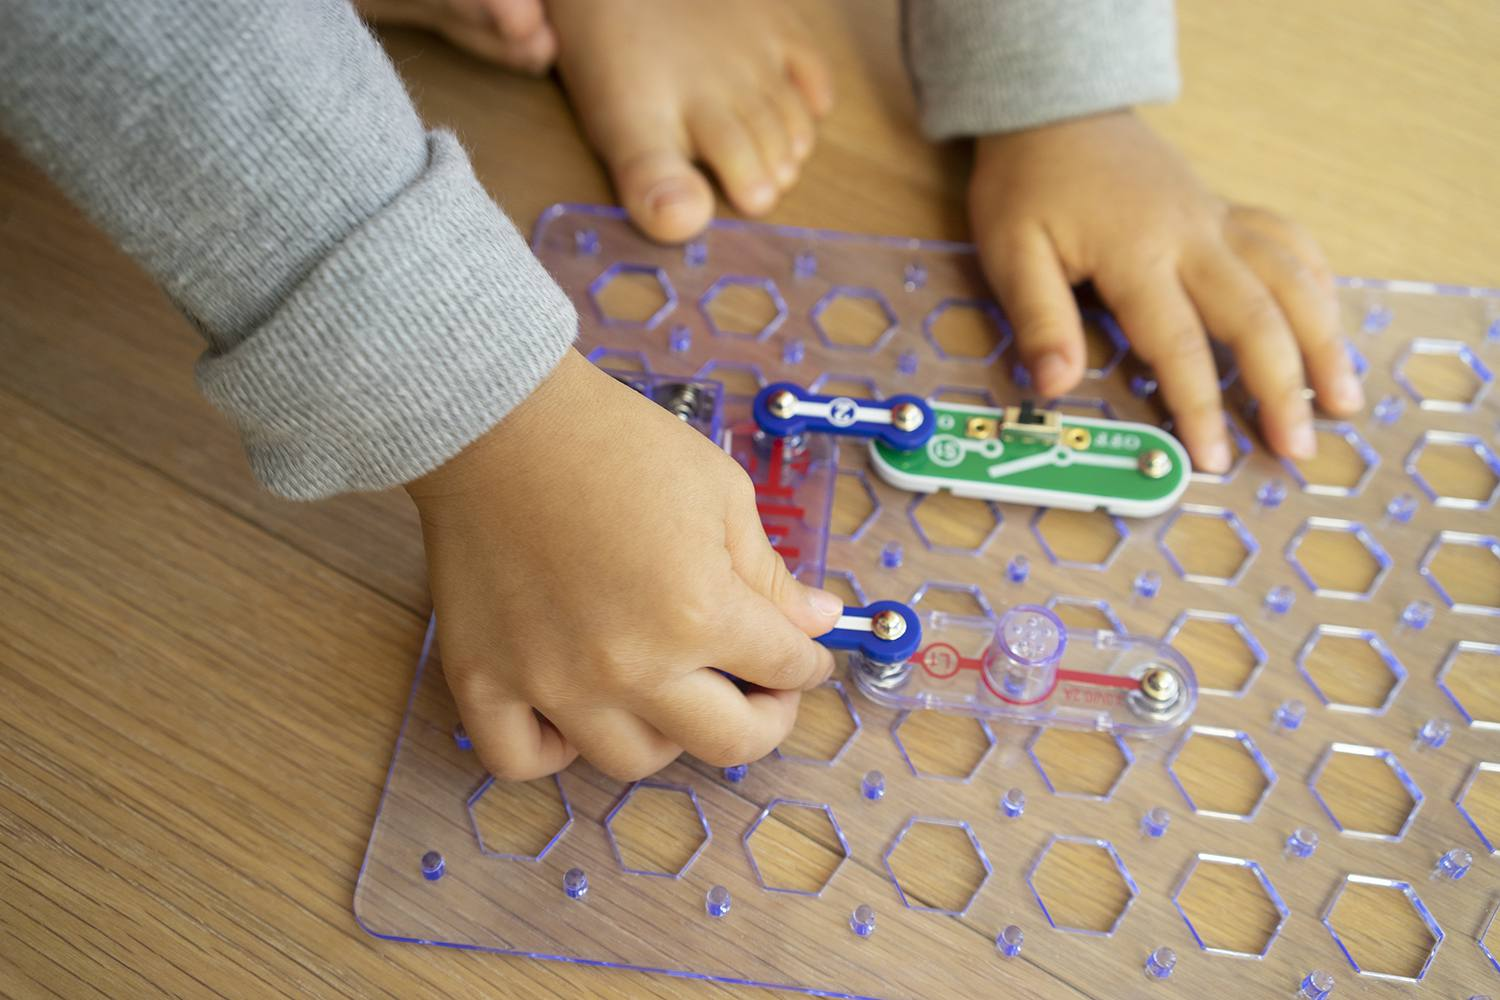 The 10 Best Educational Toy Gifts To Buy In 2019 That Snap Together Easily You Also Get An Elenco Circuits Jr Sc 100 Discovery Kit